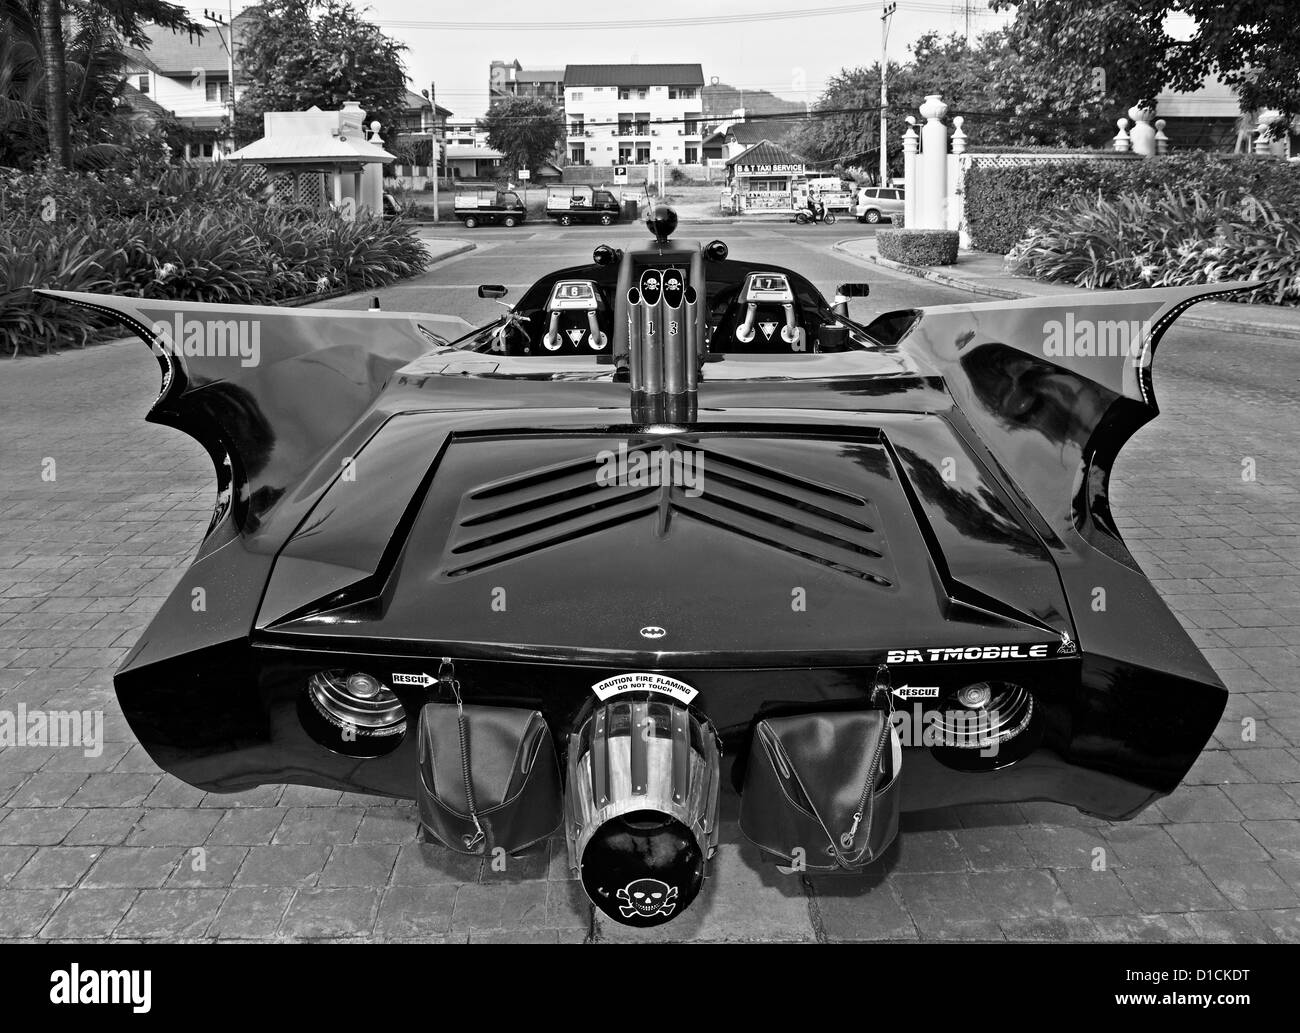 Batmobile customised road car developed from a Chevrolet Impala chassis and Lexus engine. Thailand S. E. Asia Black - Stock Image